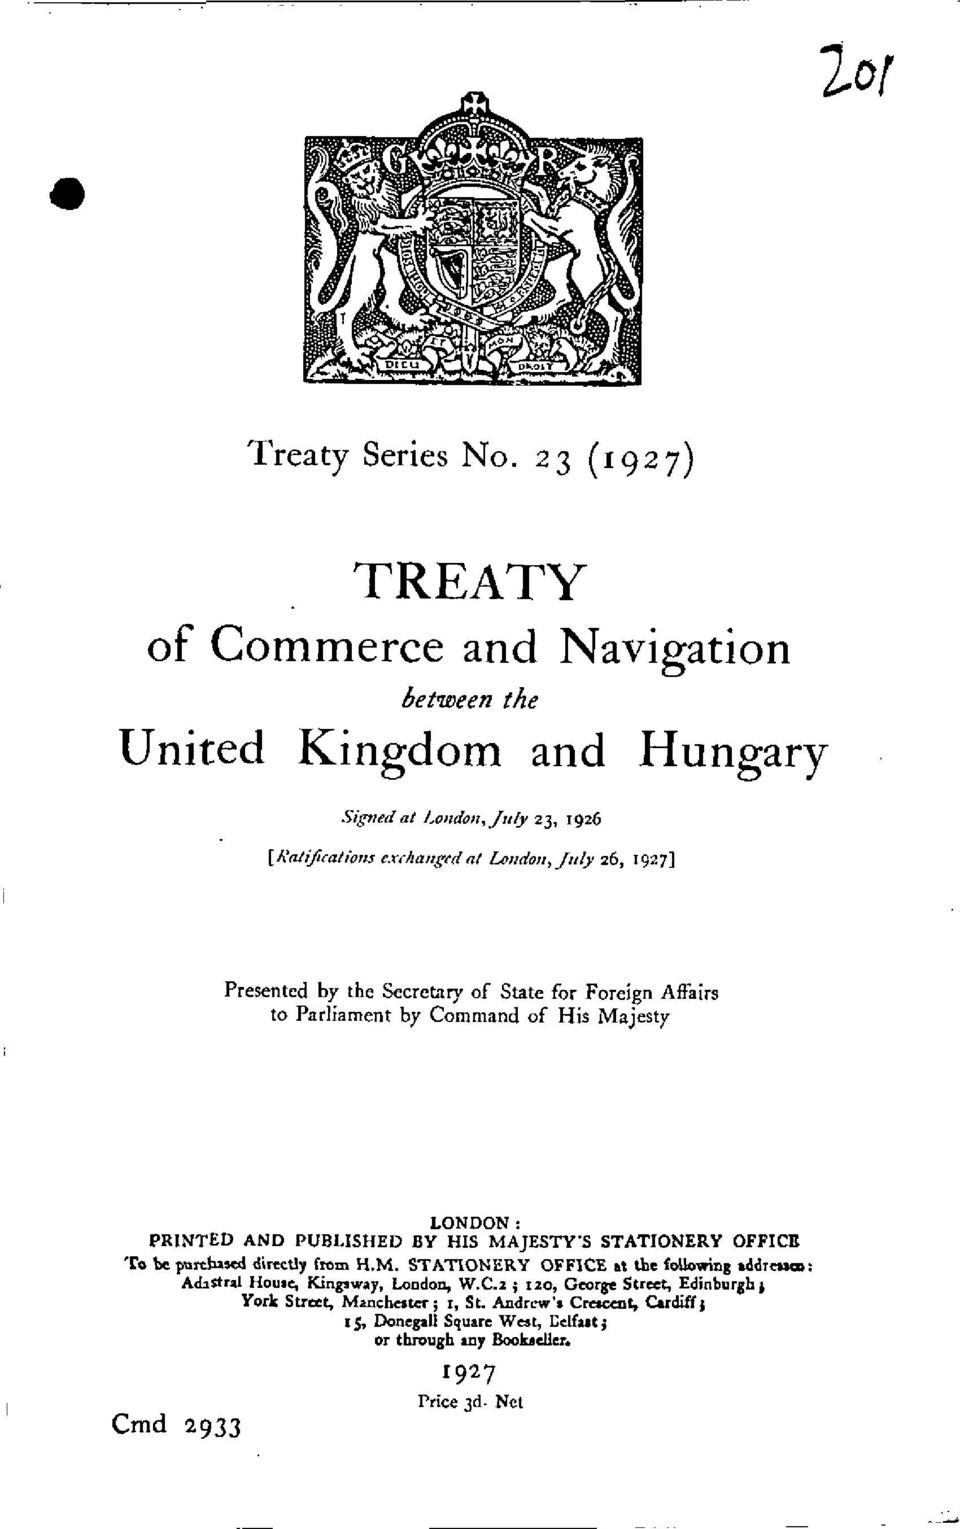 Command of His Majesty LONDON: PRINTED AND PUBLISHED BY HIS MAJESTY'S STATIONERY OFFICE To be purchased directly from H.M. STATIONERY OFFICE at the following addresaso: Adastral House, Kingsway, London, W.